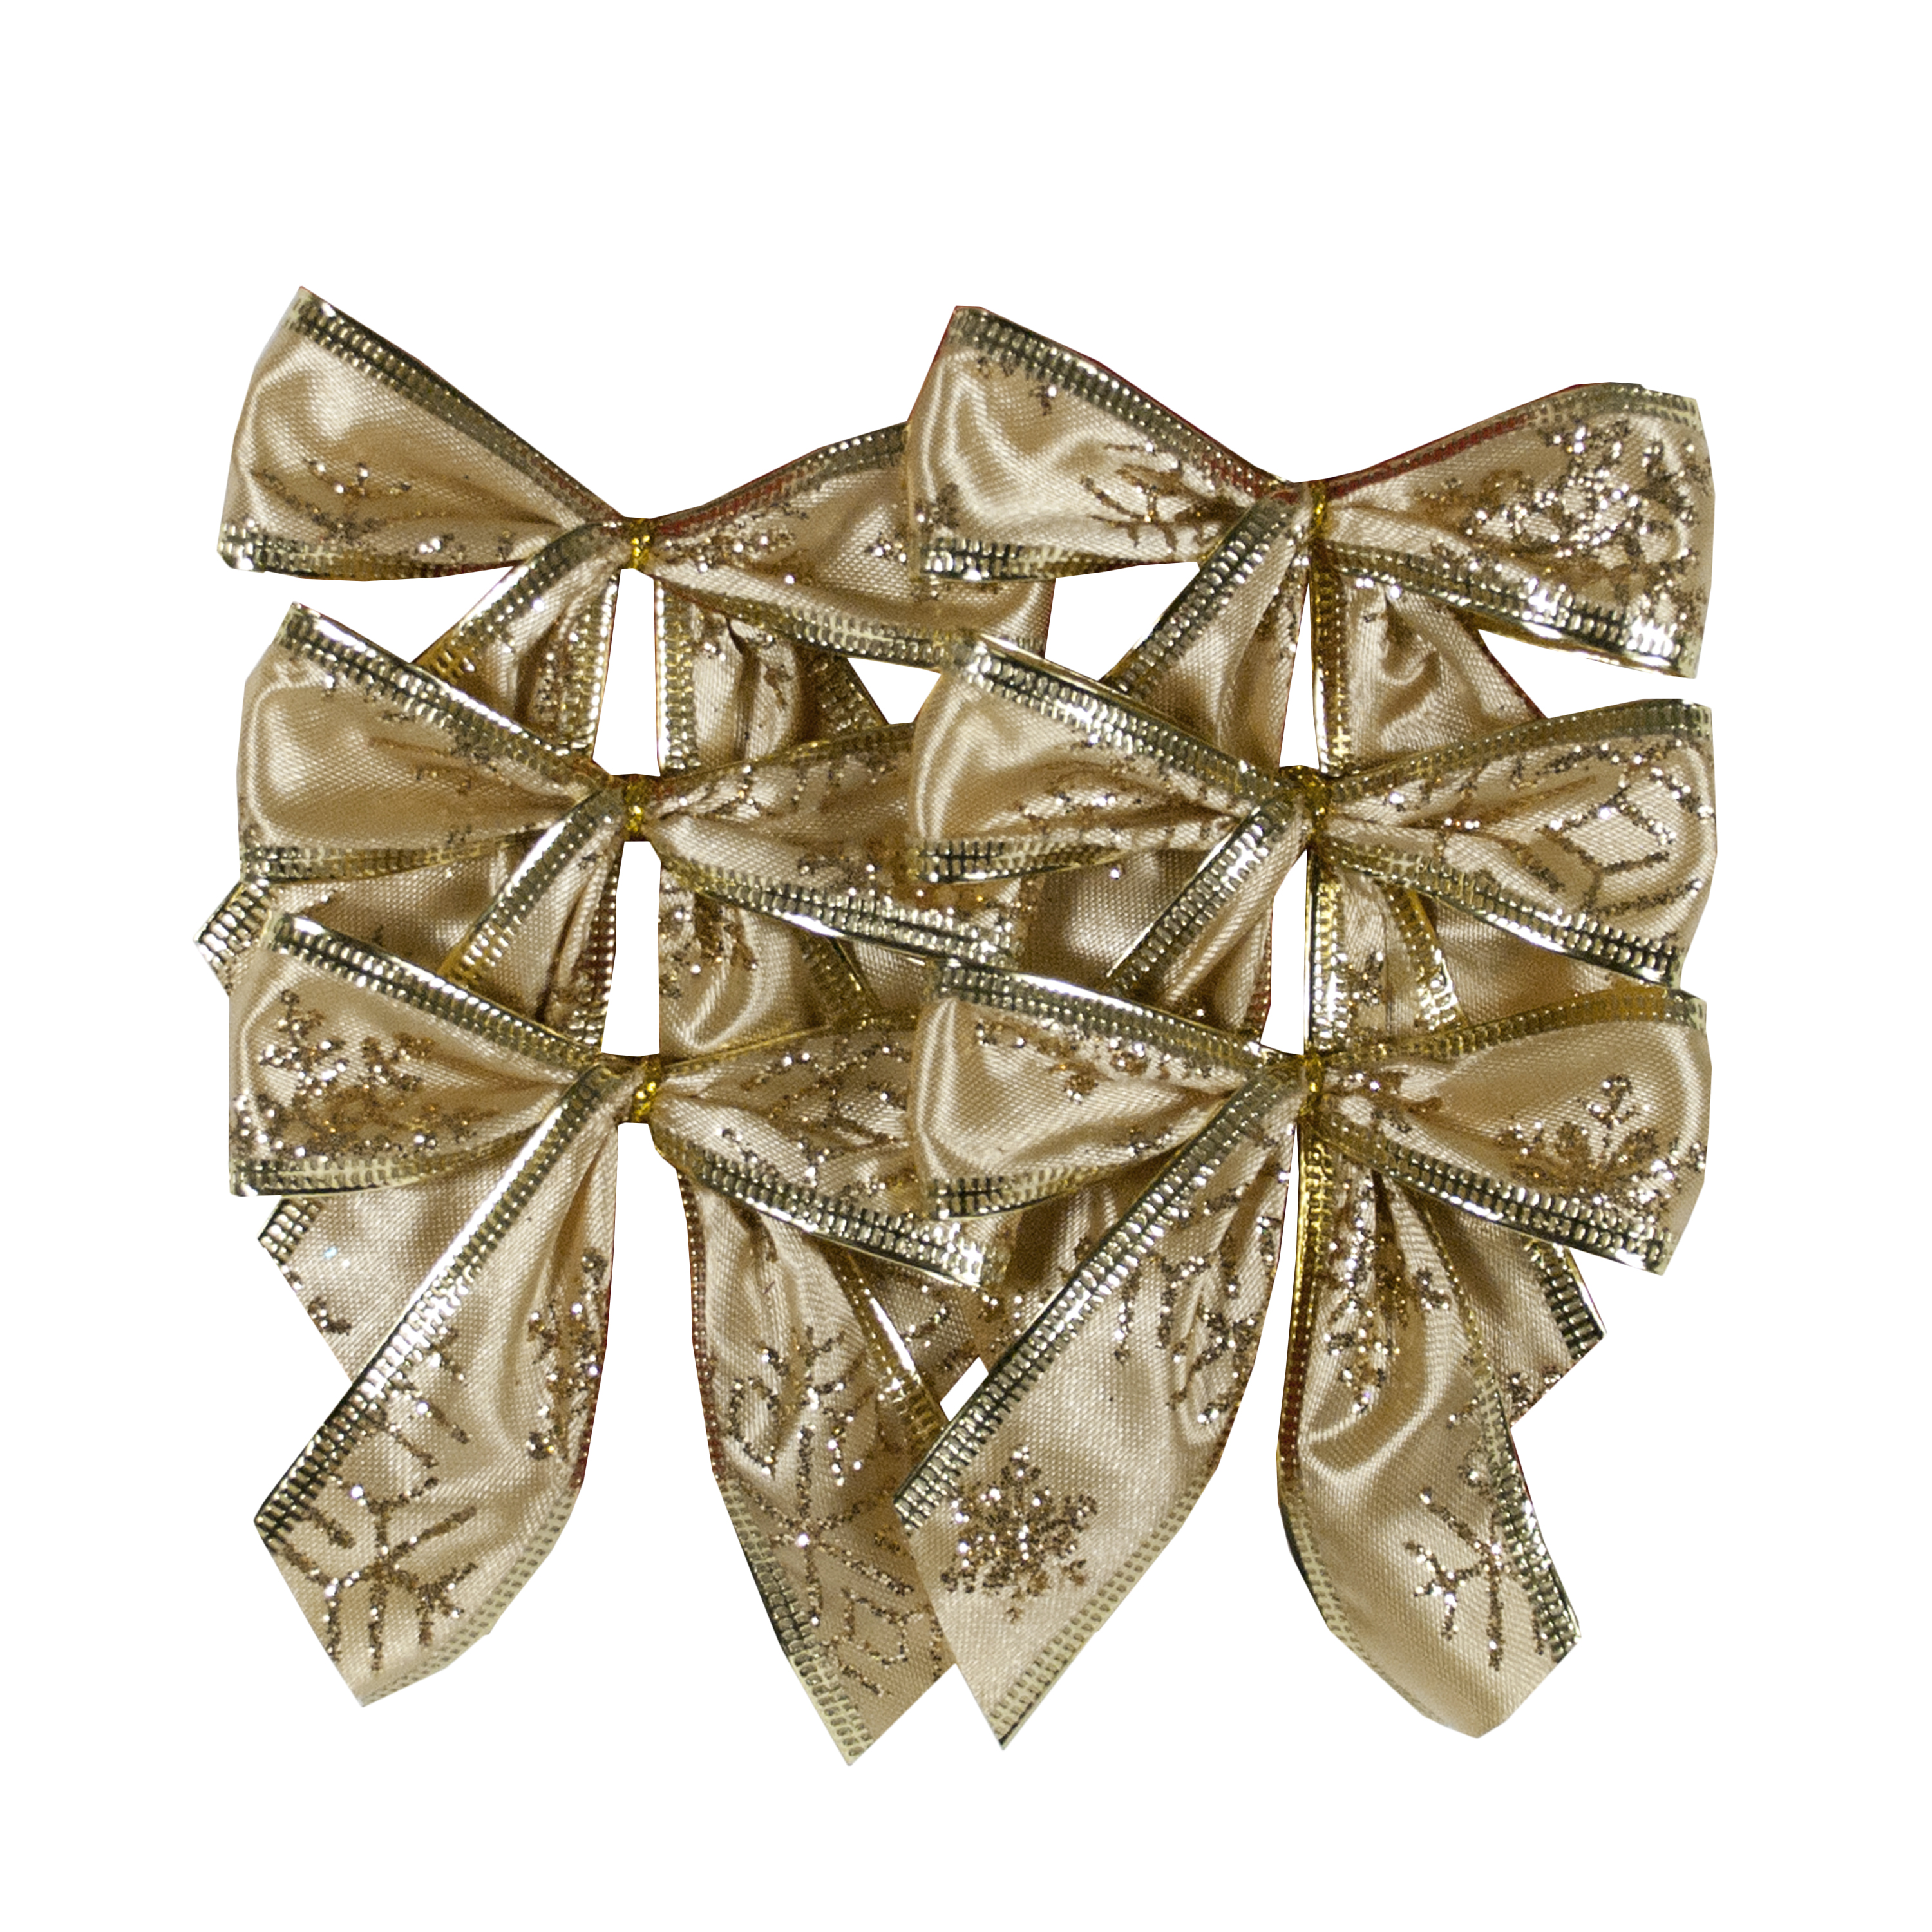 HOLIDAY TIME GOLD MINI BOWS, 6 COUNT